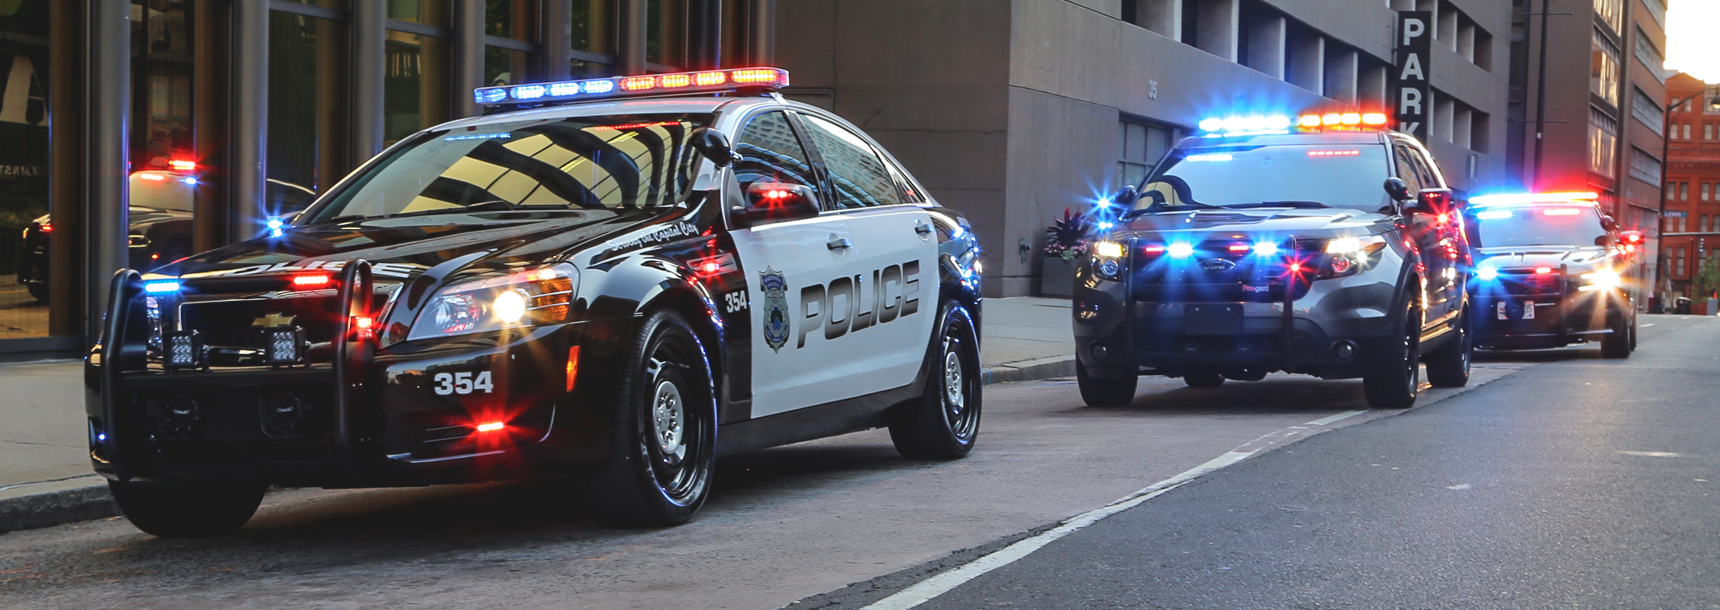 Emergency Vehicle Lights From Swps Com